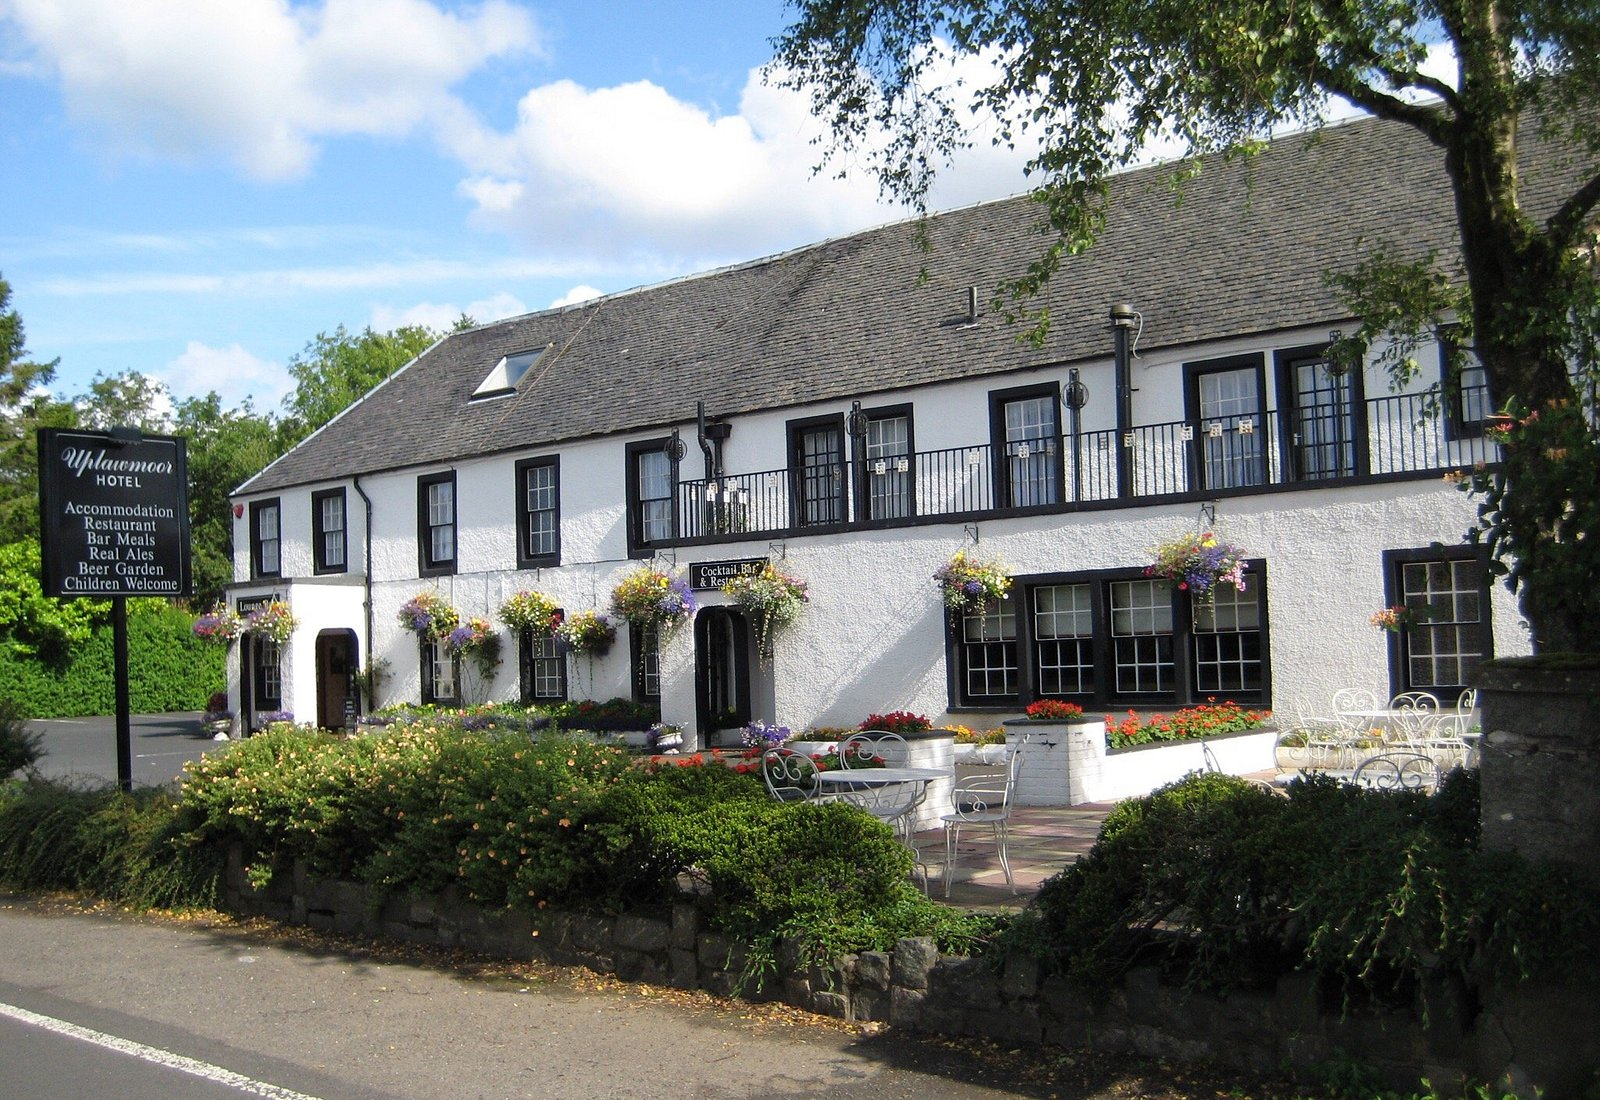 What a wonderful and charming home away from home @ the Uplawmoor Hotel-a true food destination